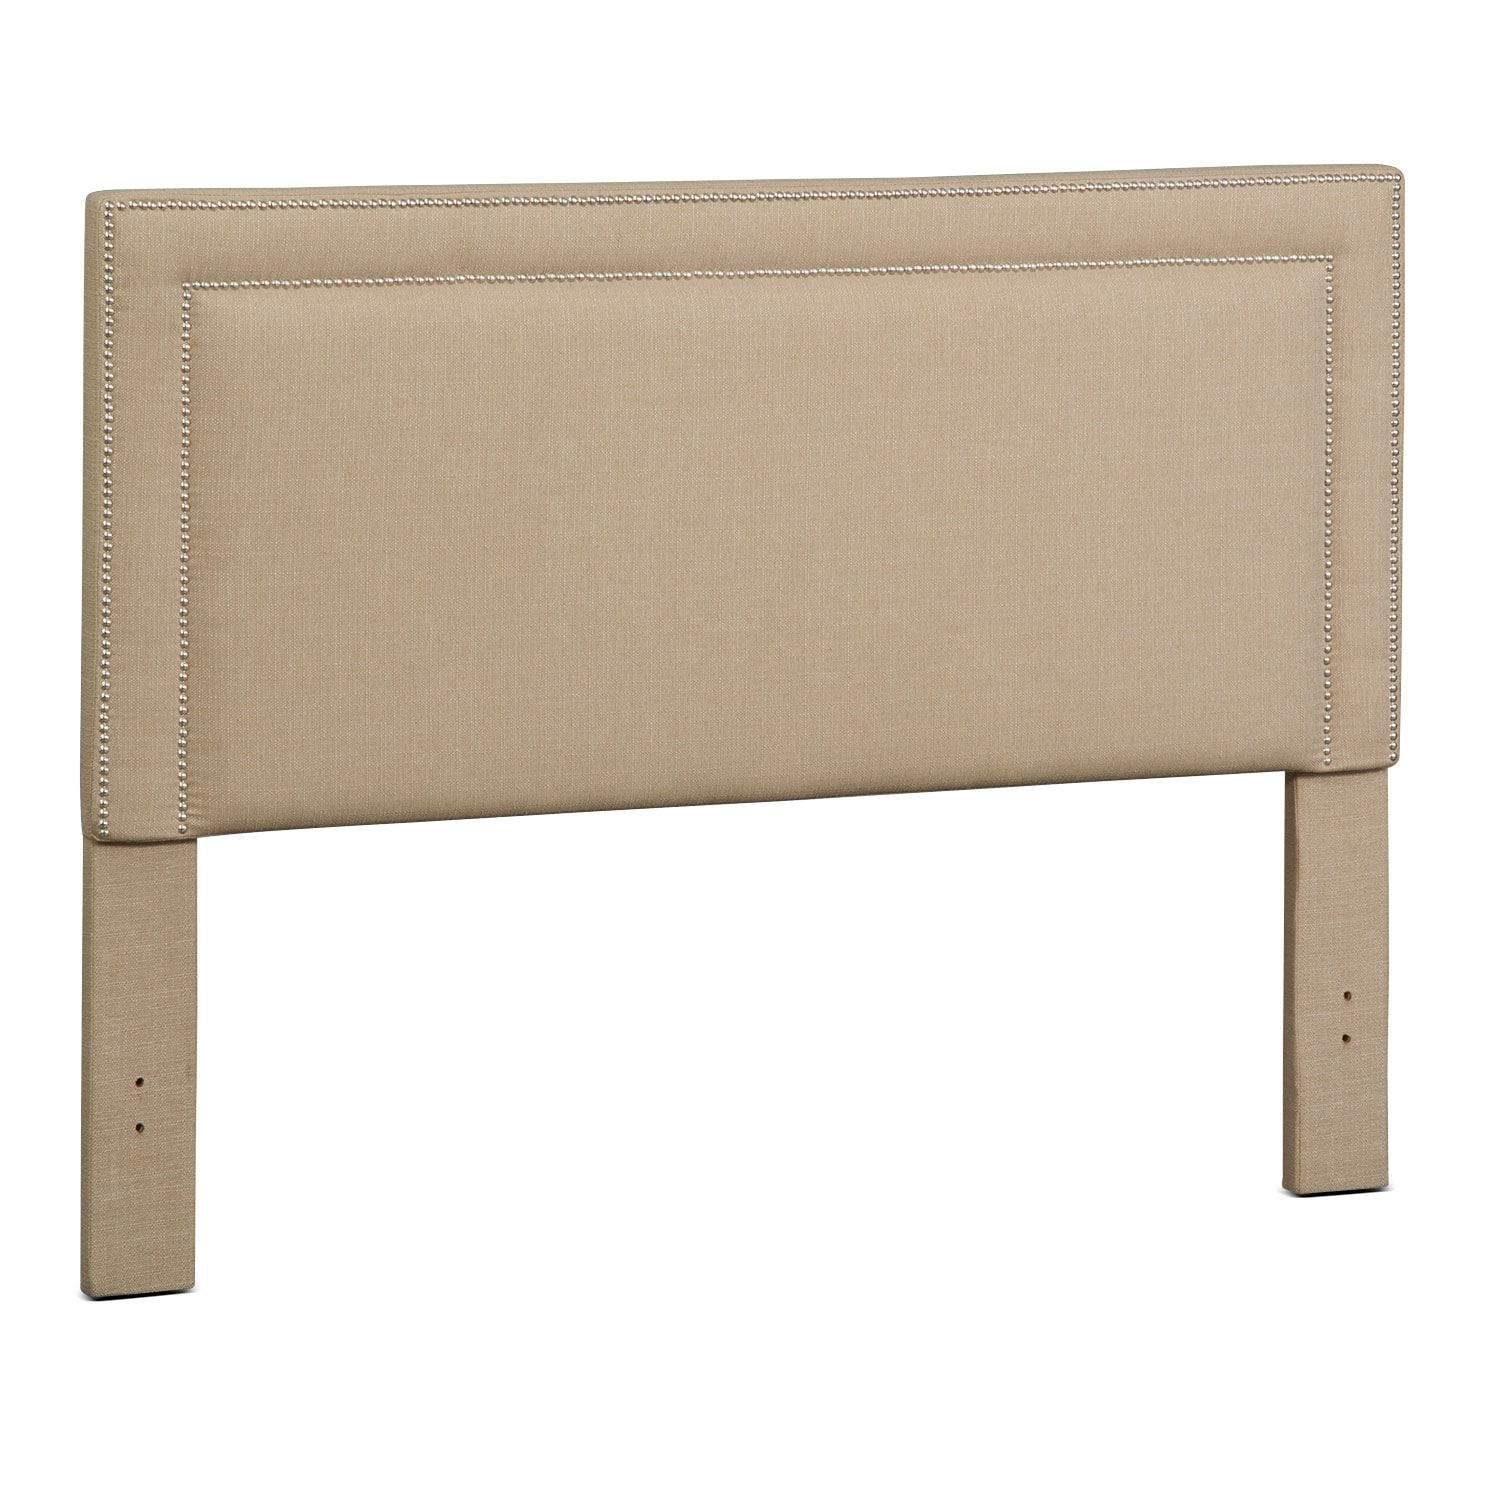 Natalie Queen Upholstered Headboard - Tan